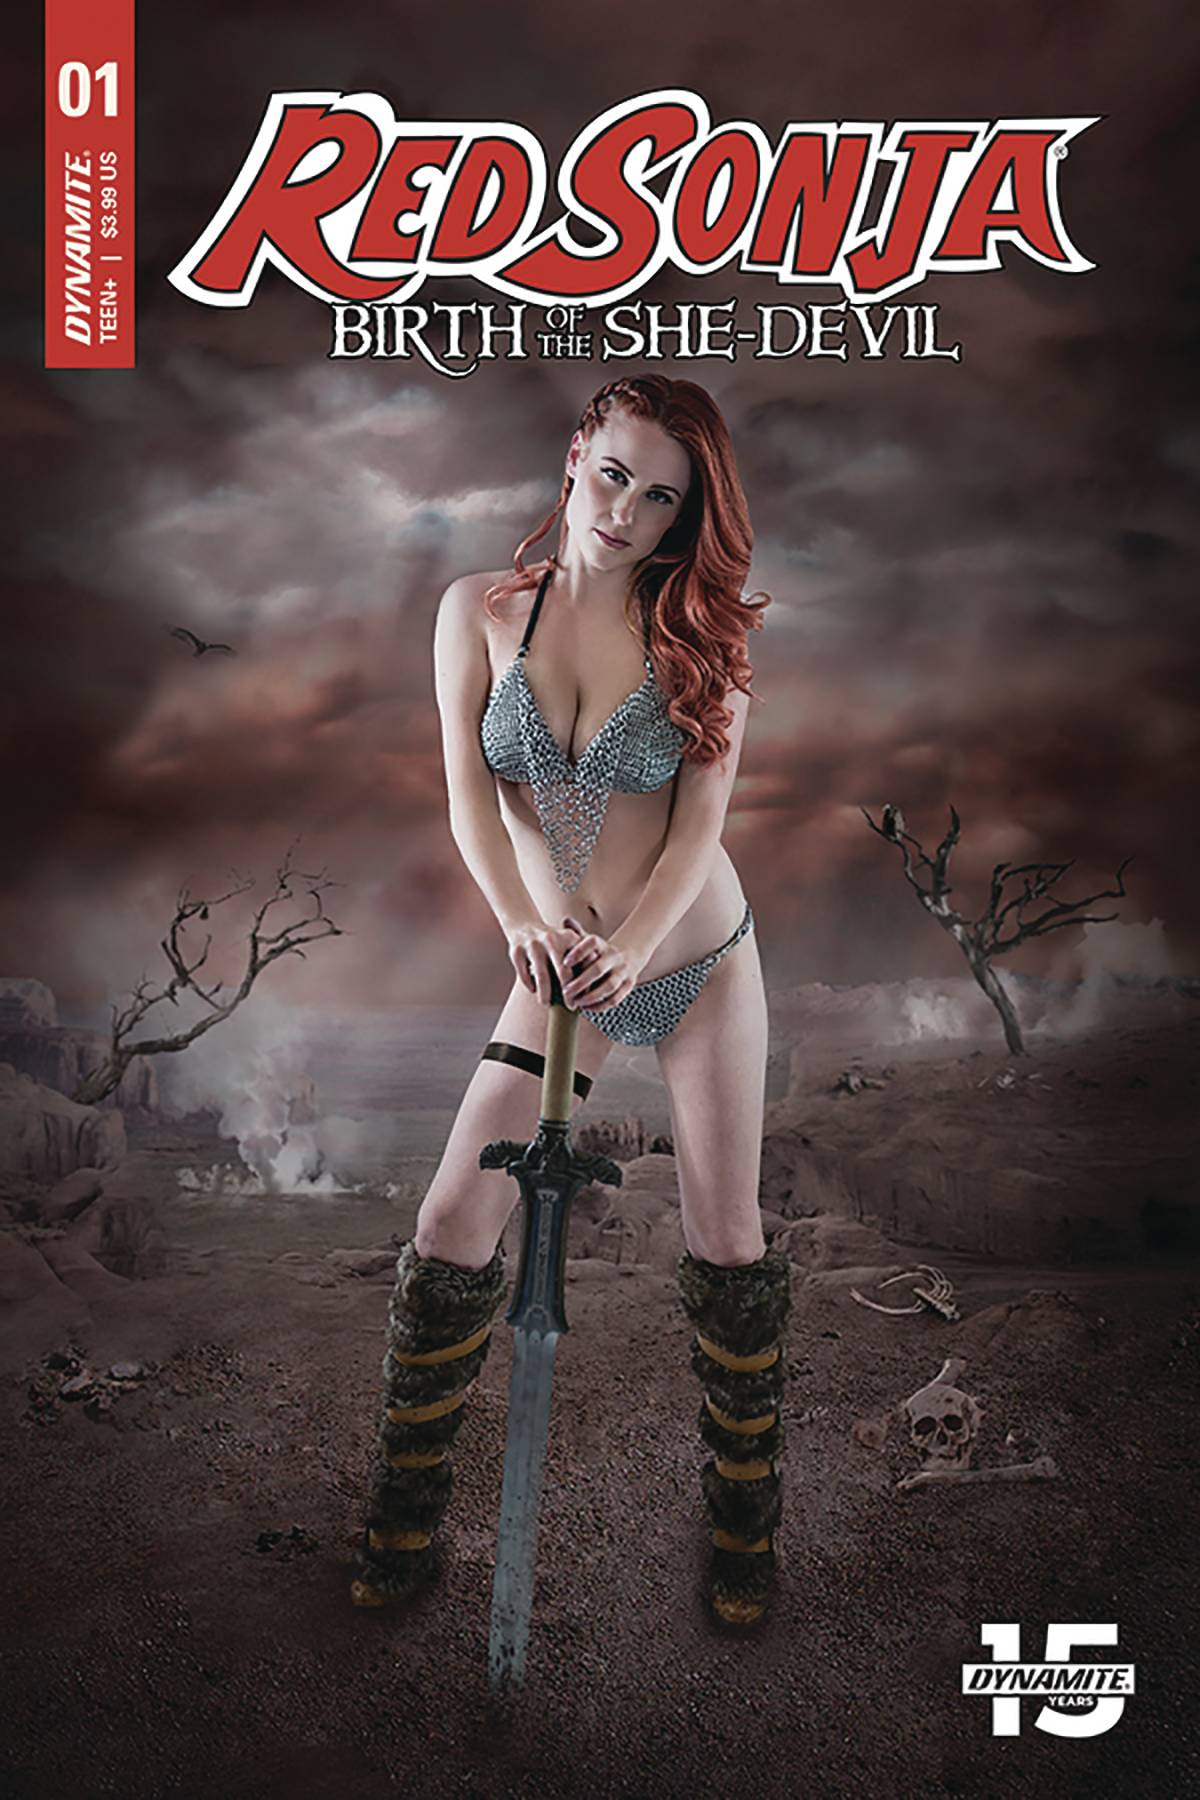 RED SONJA BIRTH OF SHE DEVIL #1 CVR C COSPLAY